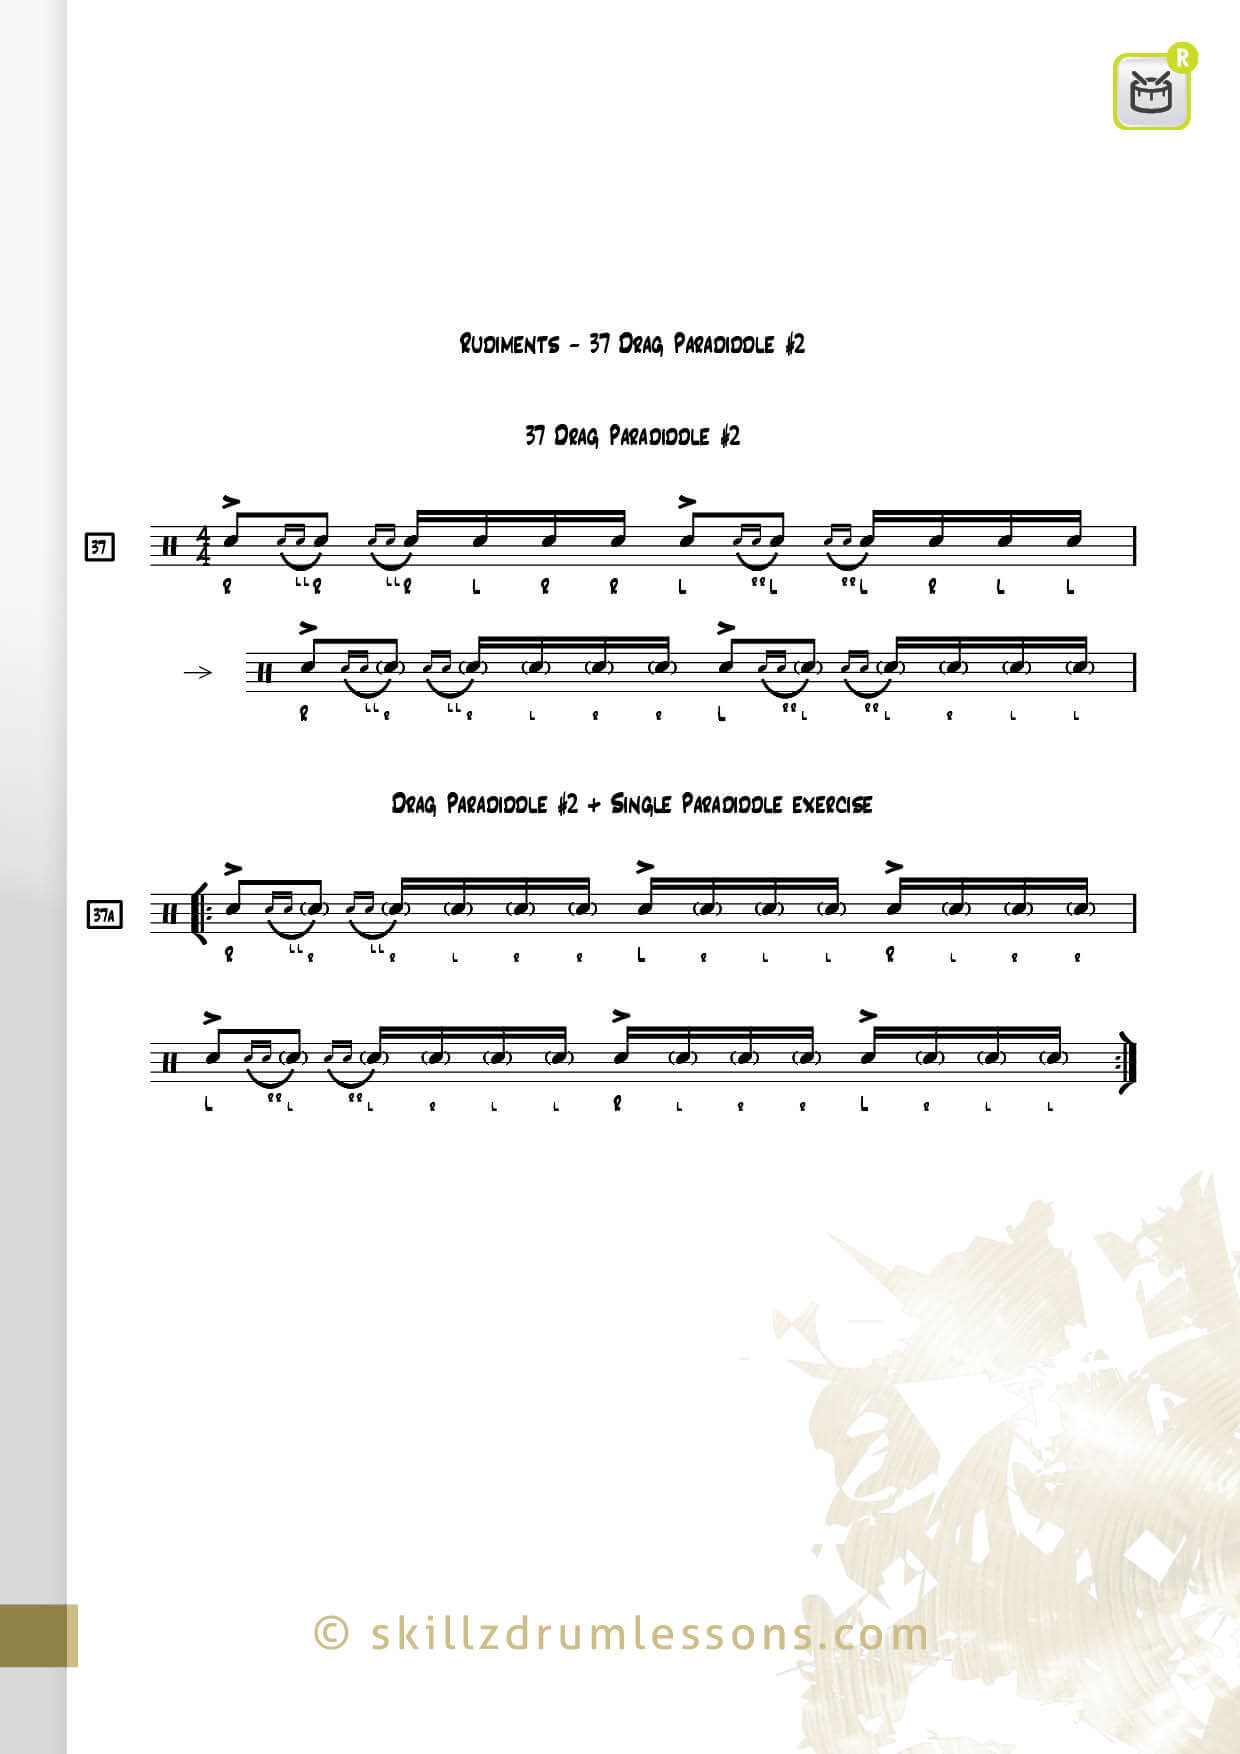 This is an image of the Official 40 Essential P.A.S. Rudiments #37 The Drag Paradiddle #2 by Skillz Drum Lessons